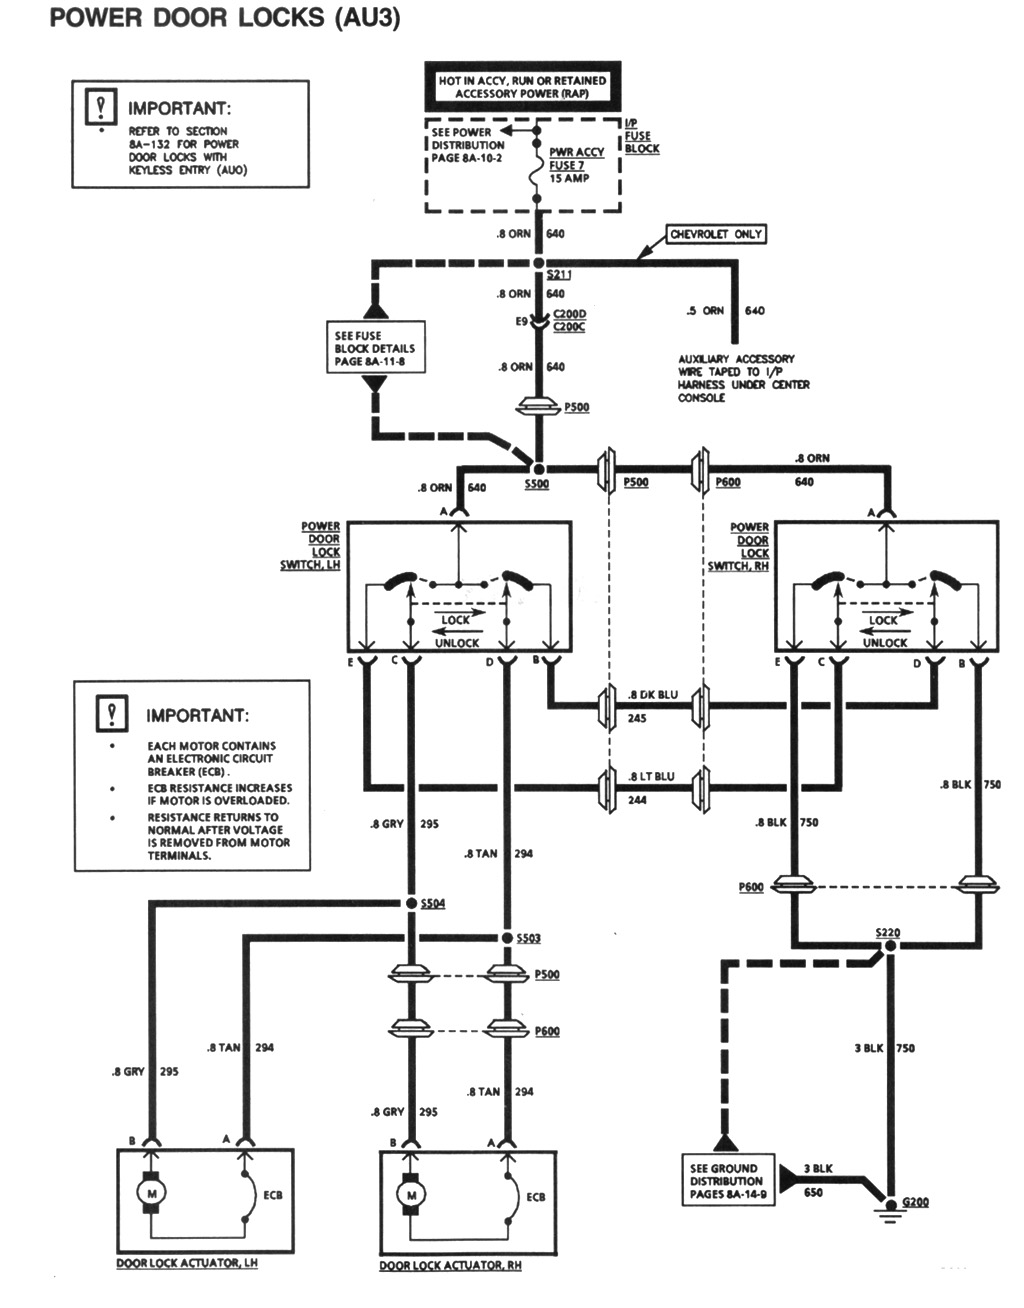 Power door lock schematic